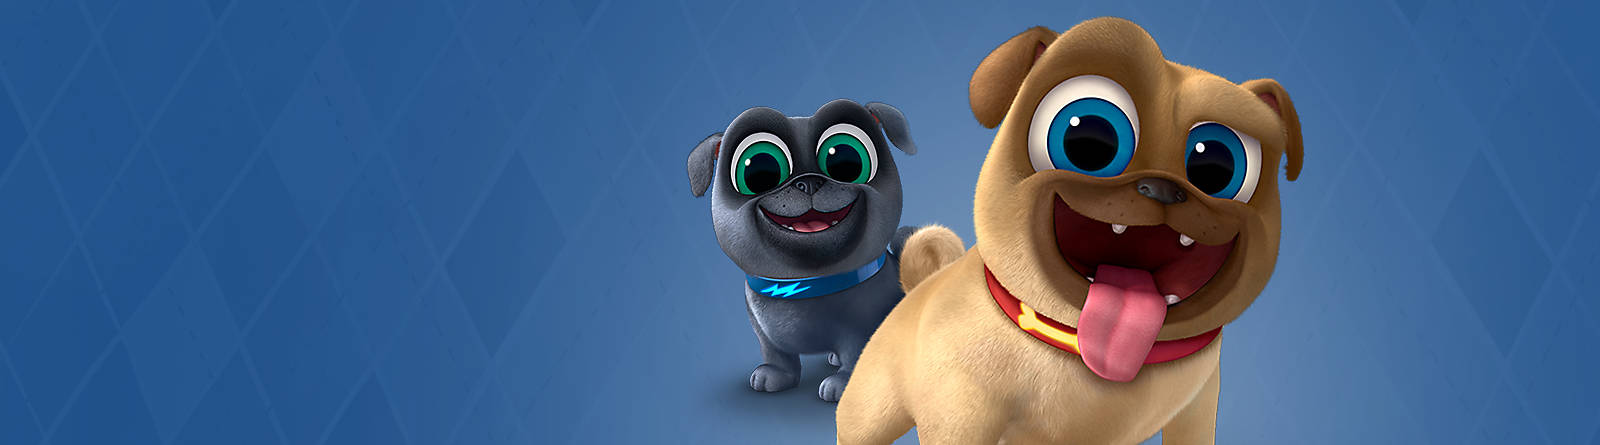 Puppy Dog Pals Unleash our range of Puppy Dog Pals soft toys, playsets, clothes, figures and more